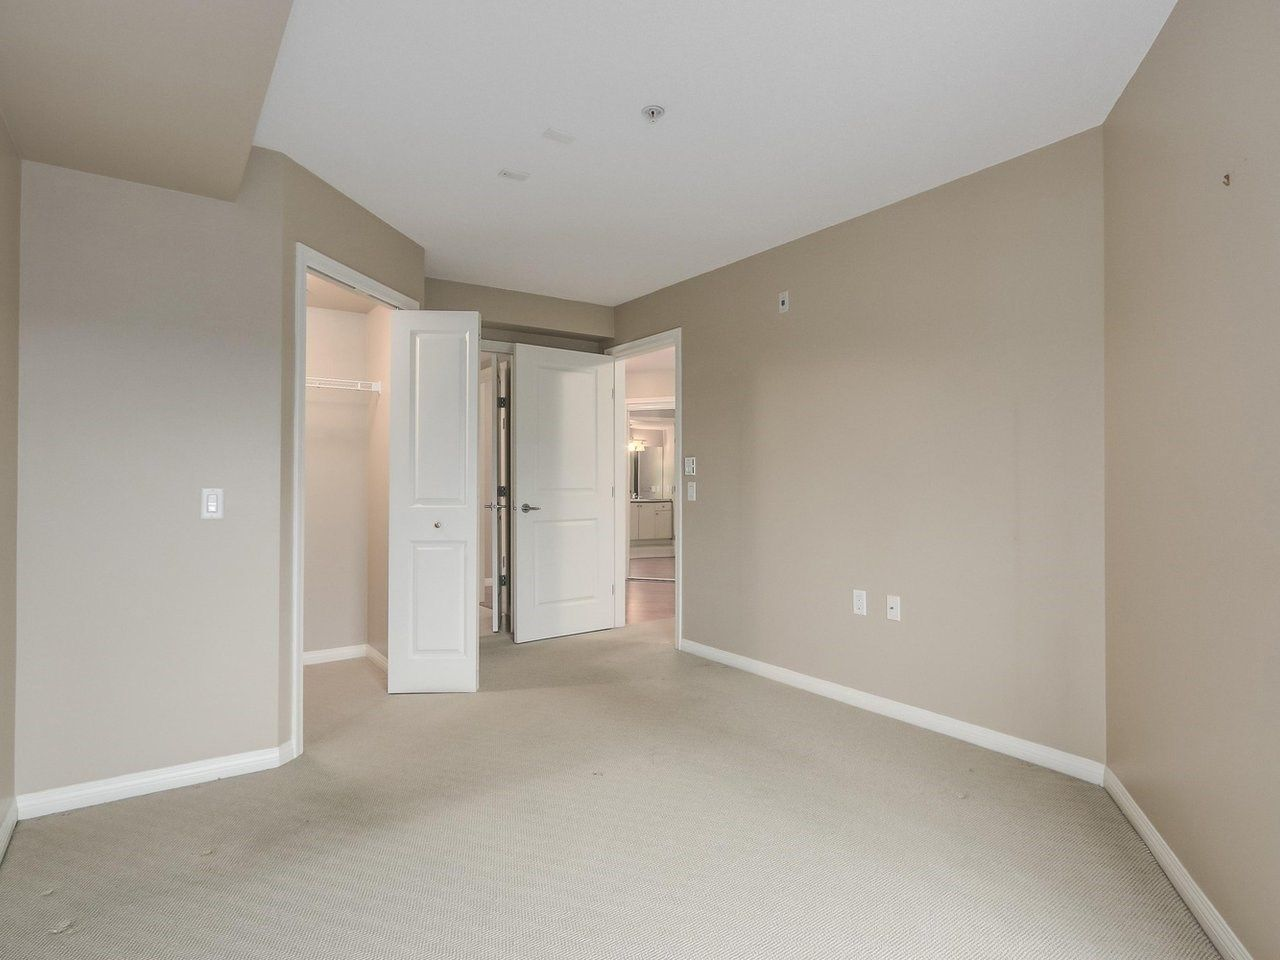 Photo 11: Photos: 226 8880 202 Street in Langley: Walnut Grove Condo for sale : MLS® # R2234850